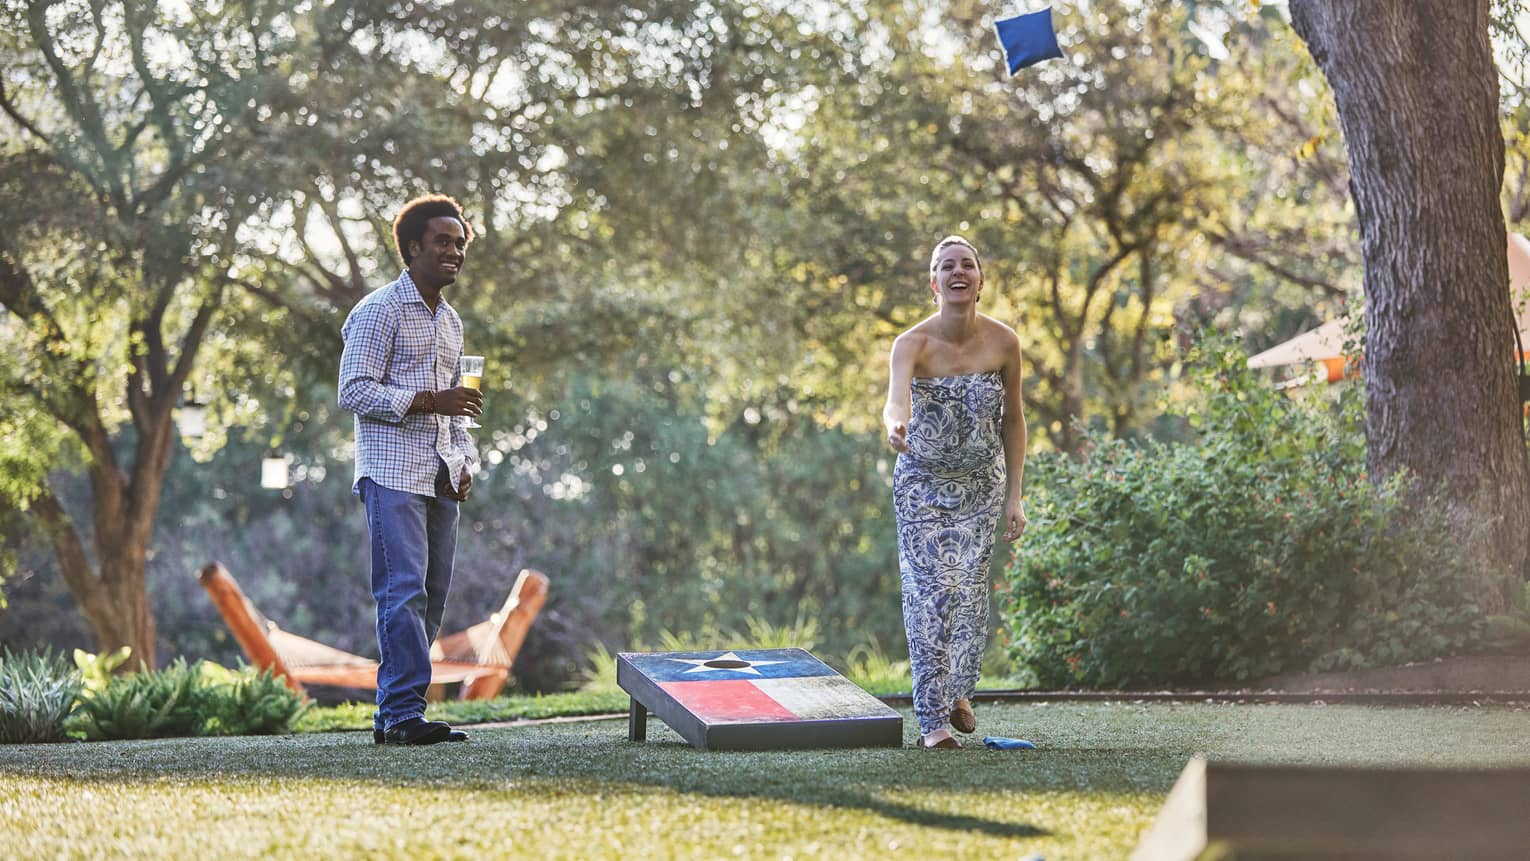 Laughing woman tosses bean bag on lawn, man holding beer watches